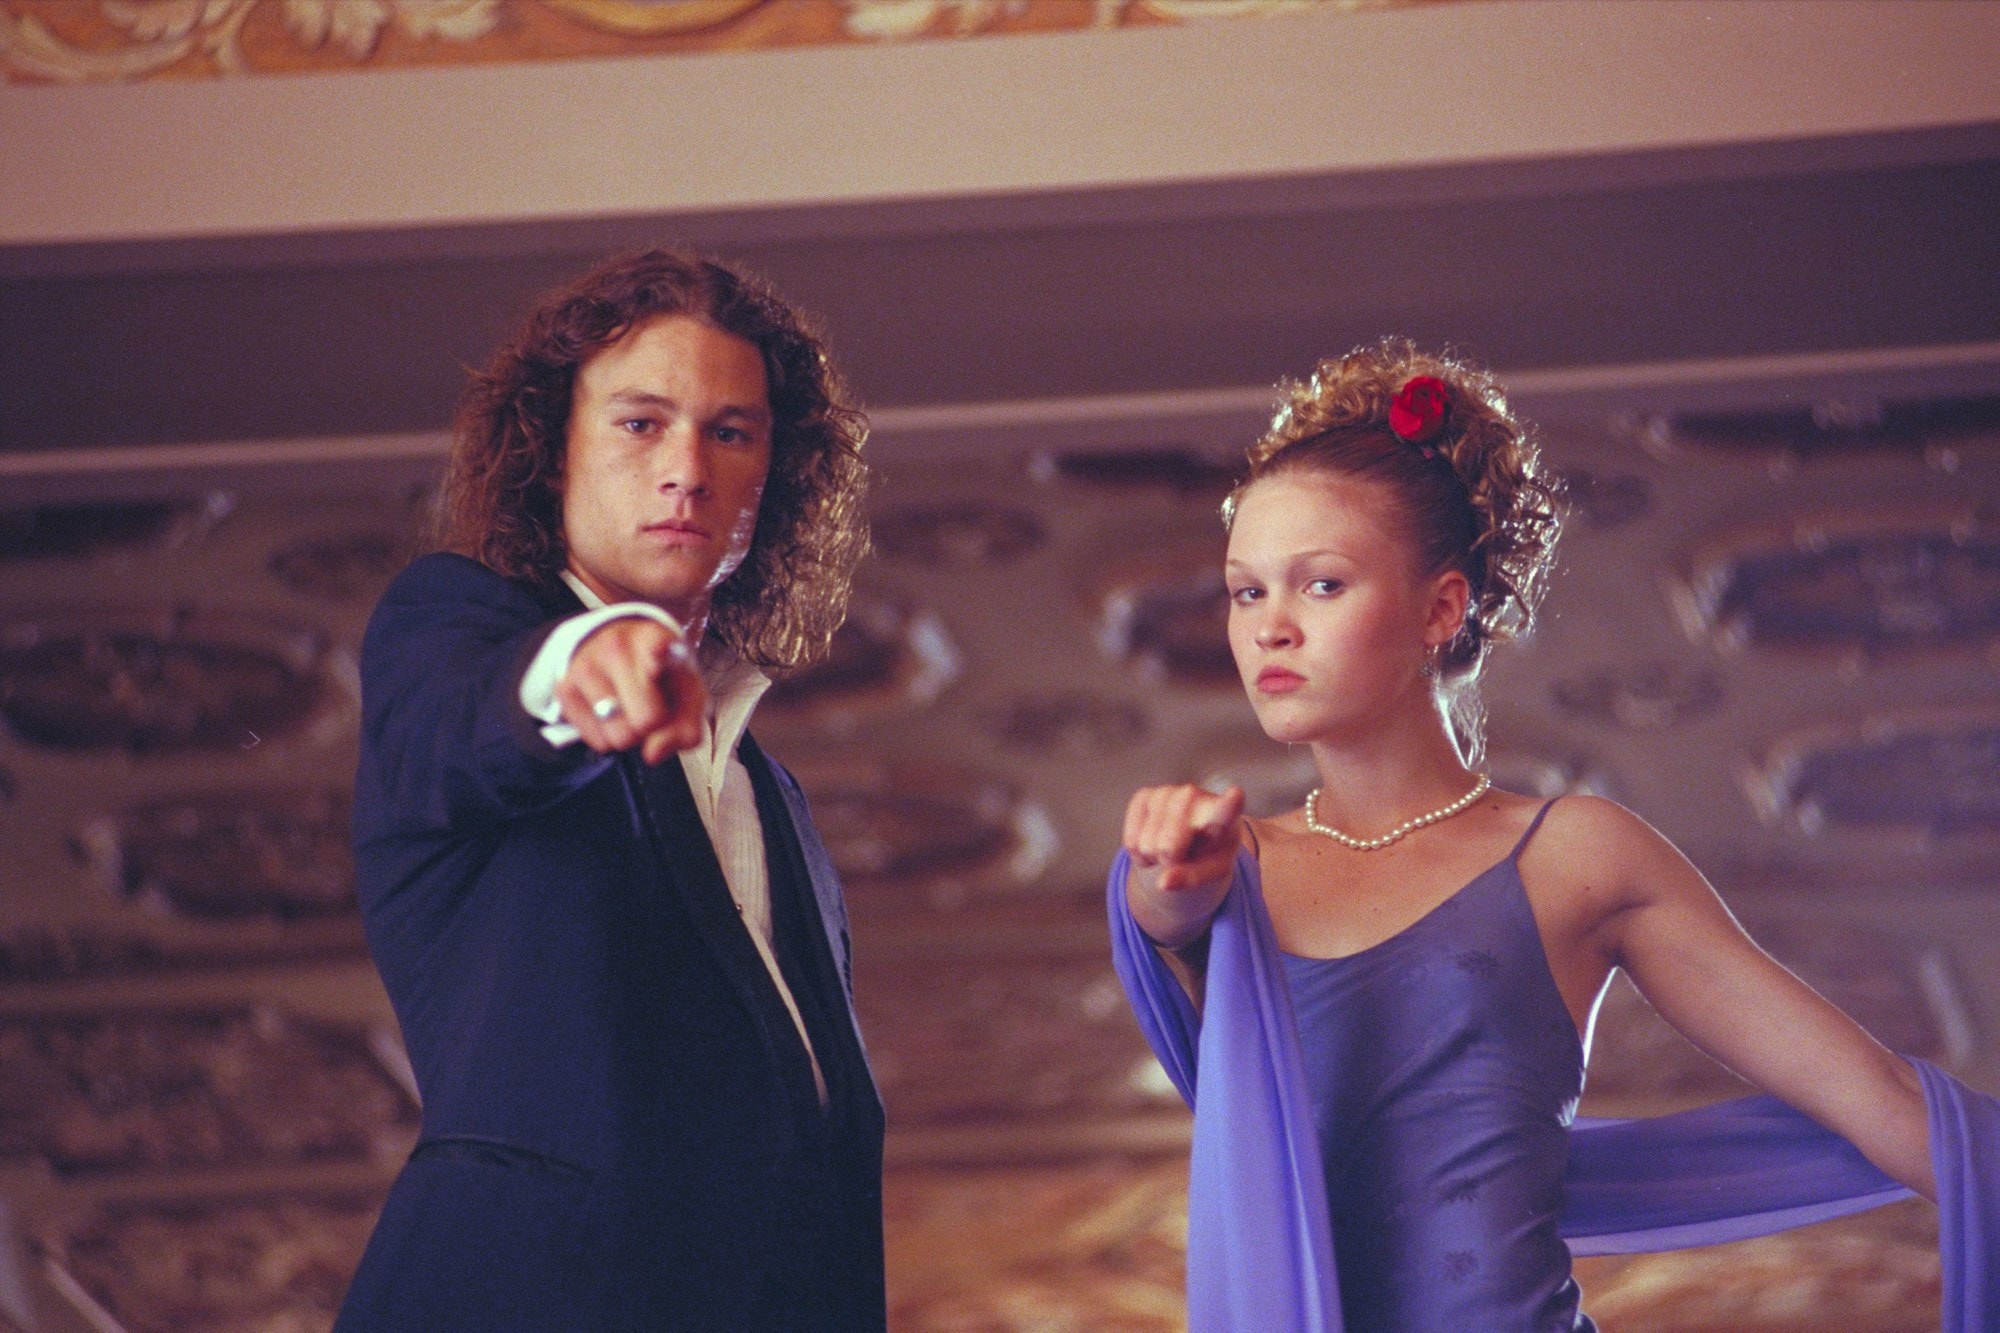 close up shot of julia stiles with curly updo hairstyle with flowers in it, wearing all purple, standing next to heath ledger on the set of 10 Things I hate about you